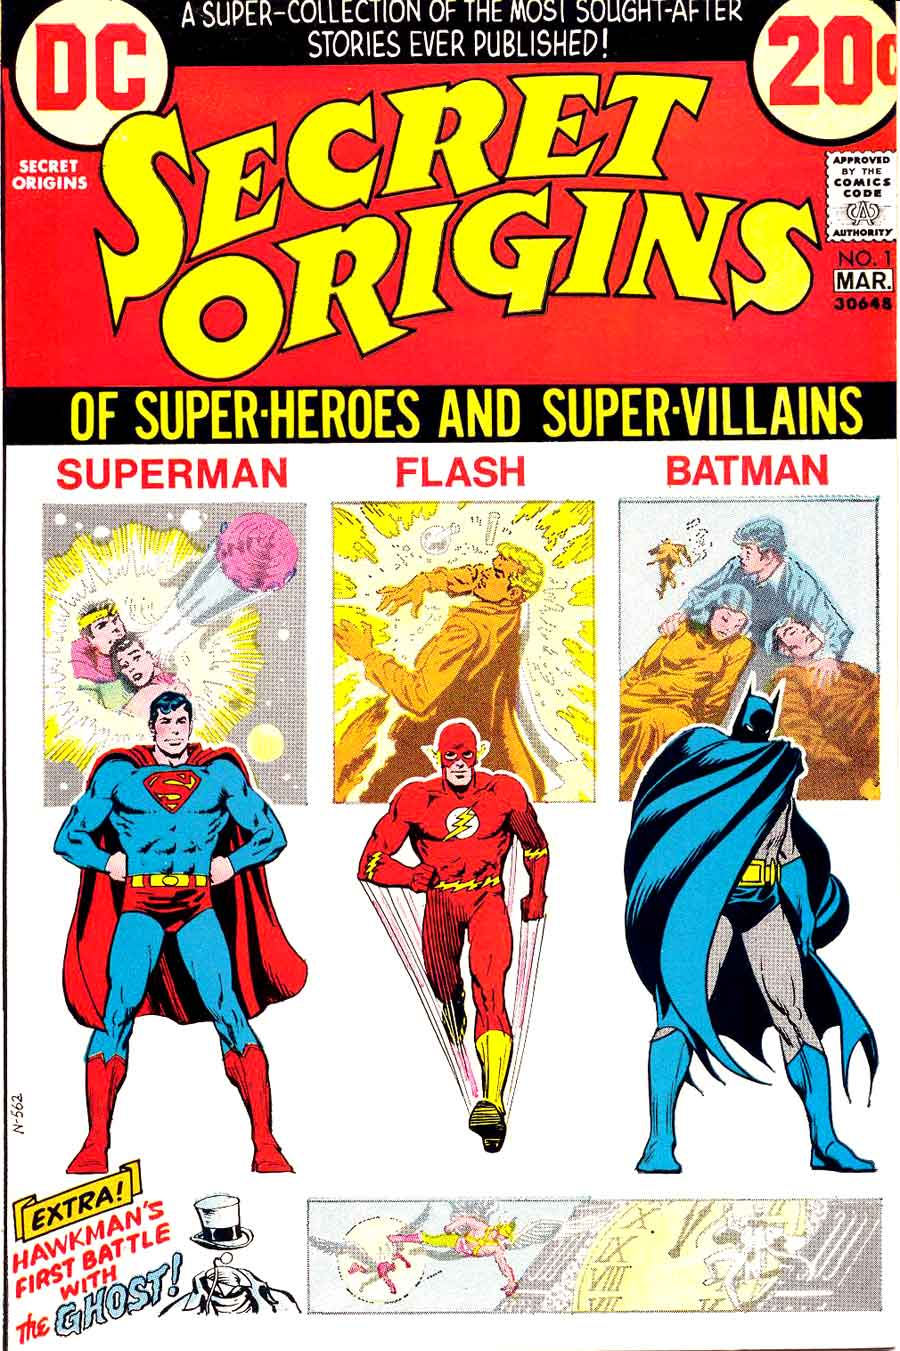 Secret Origins v2 #1, 1973 dc bronze age comic book cover